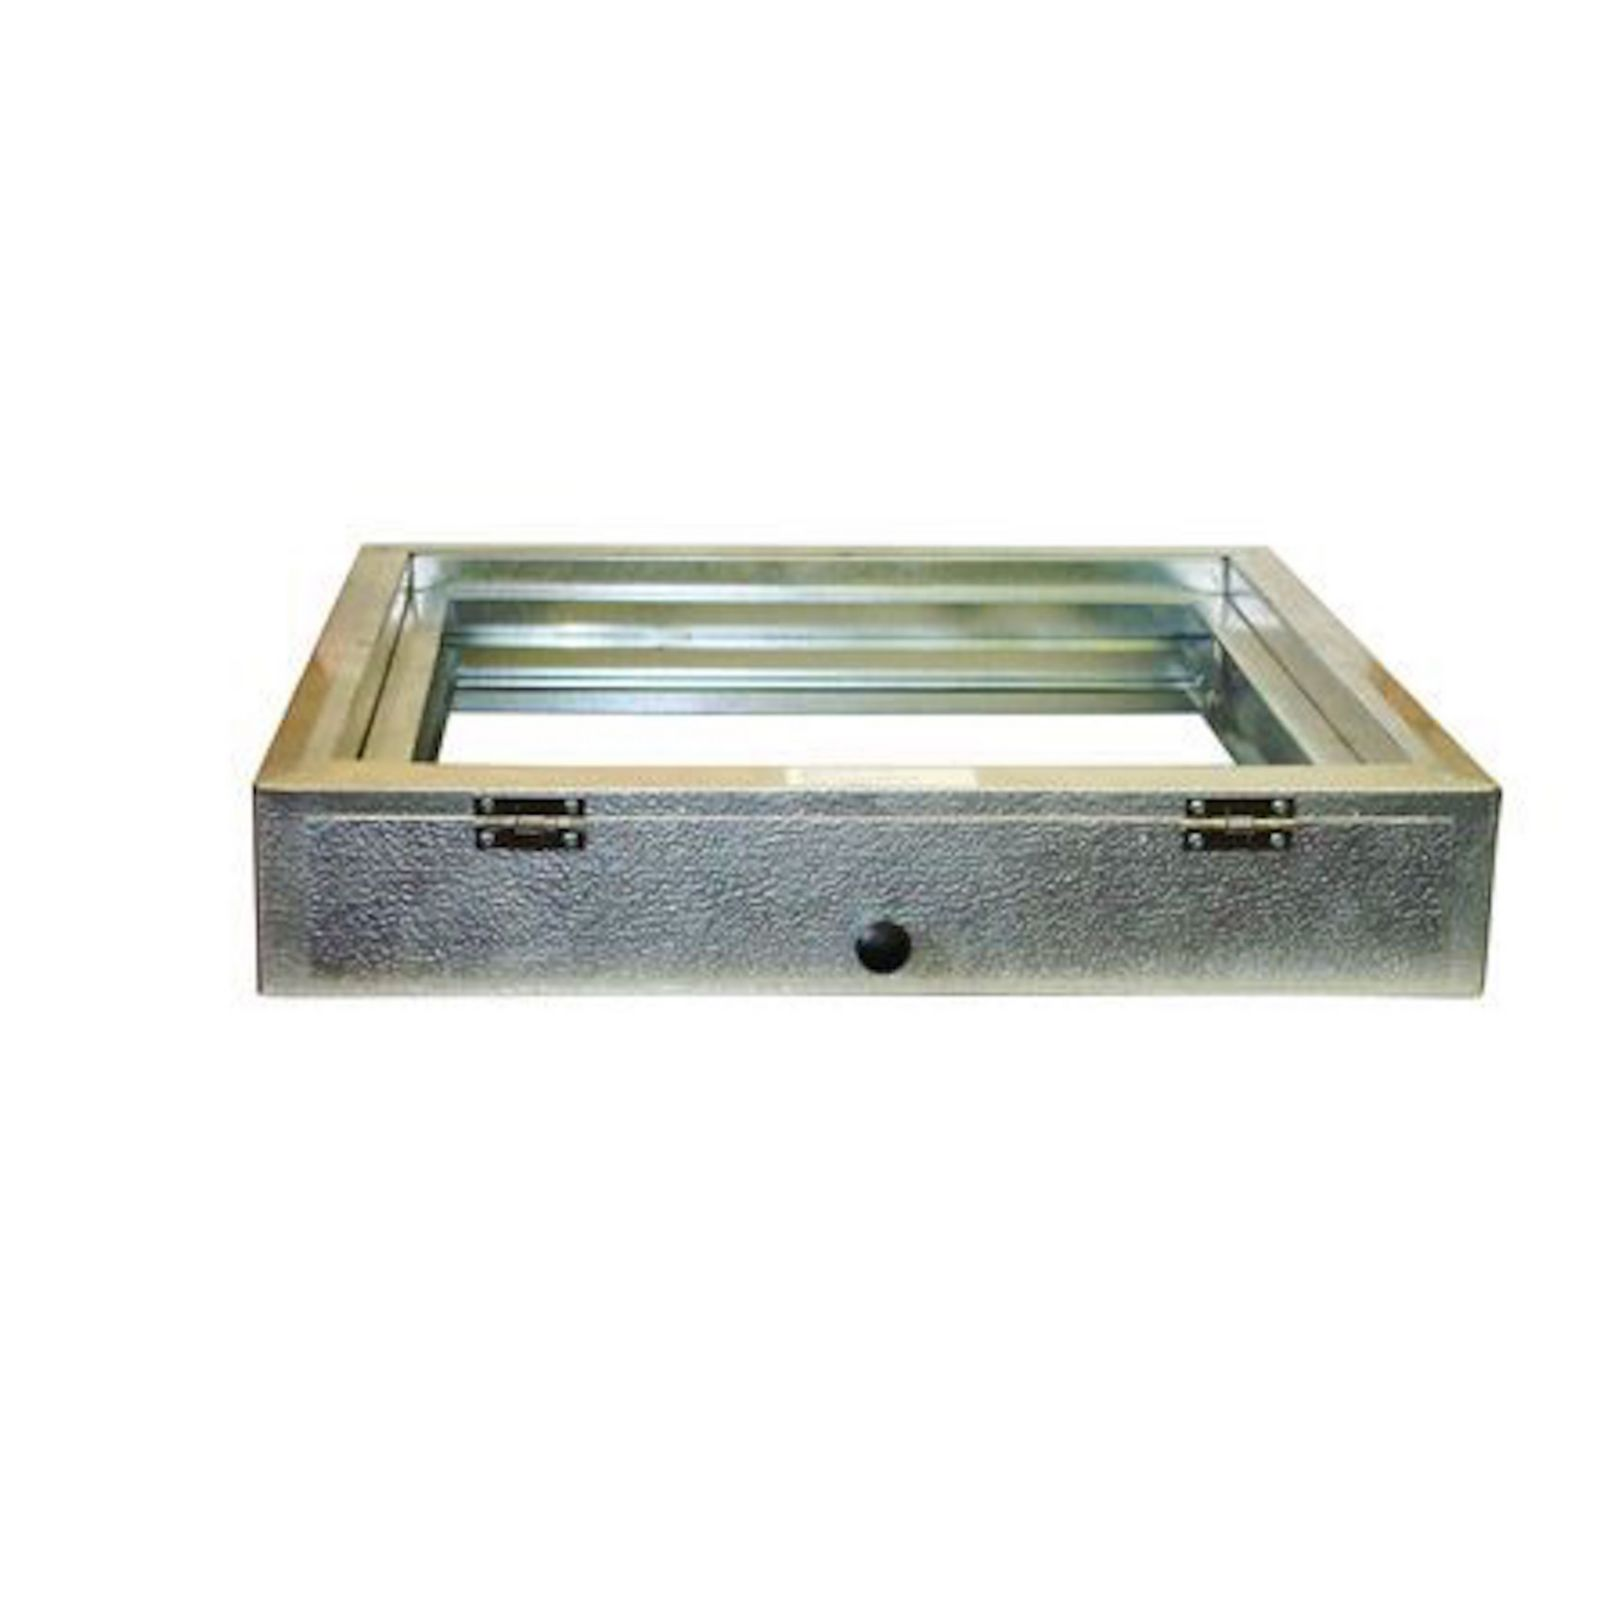 "The Metal Shop 433-247 - 2"" Filter Housing 22.5"" X 22"" For 20"" X 20"" Filter"